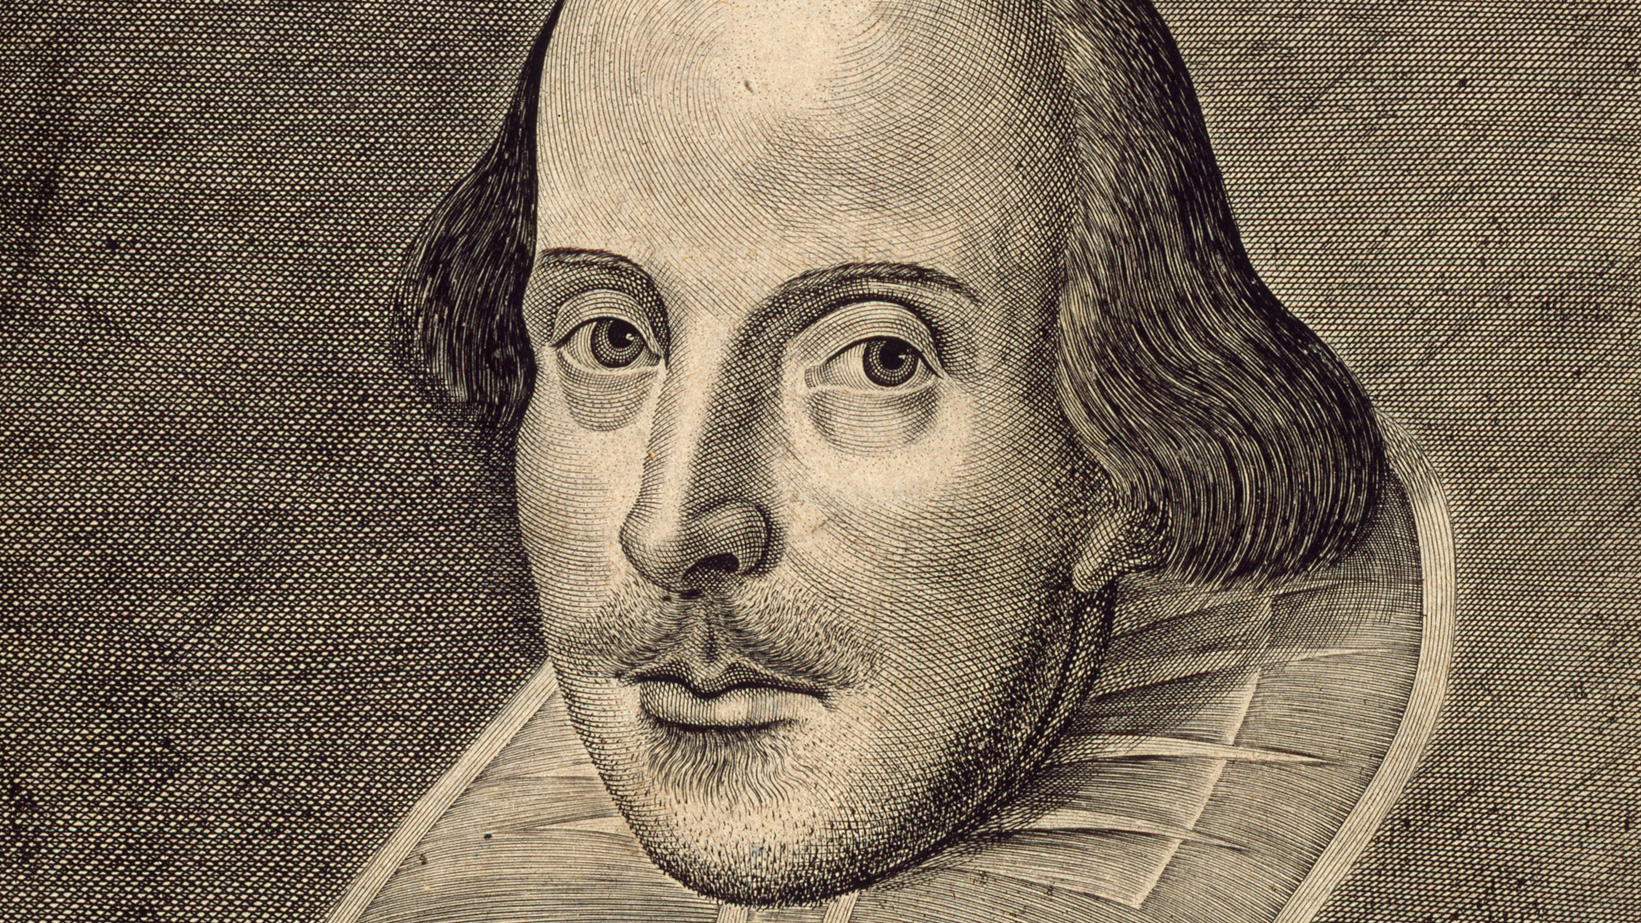 William Shakespeare - The British Library